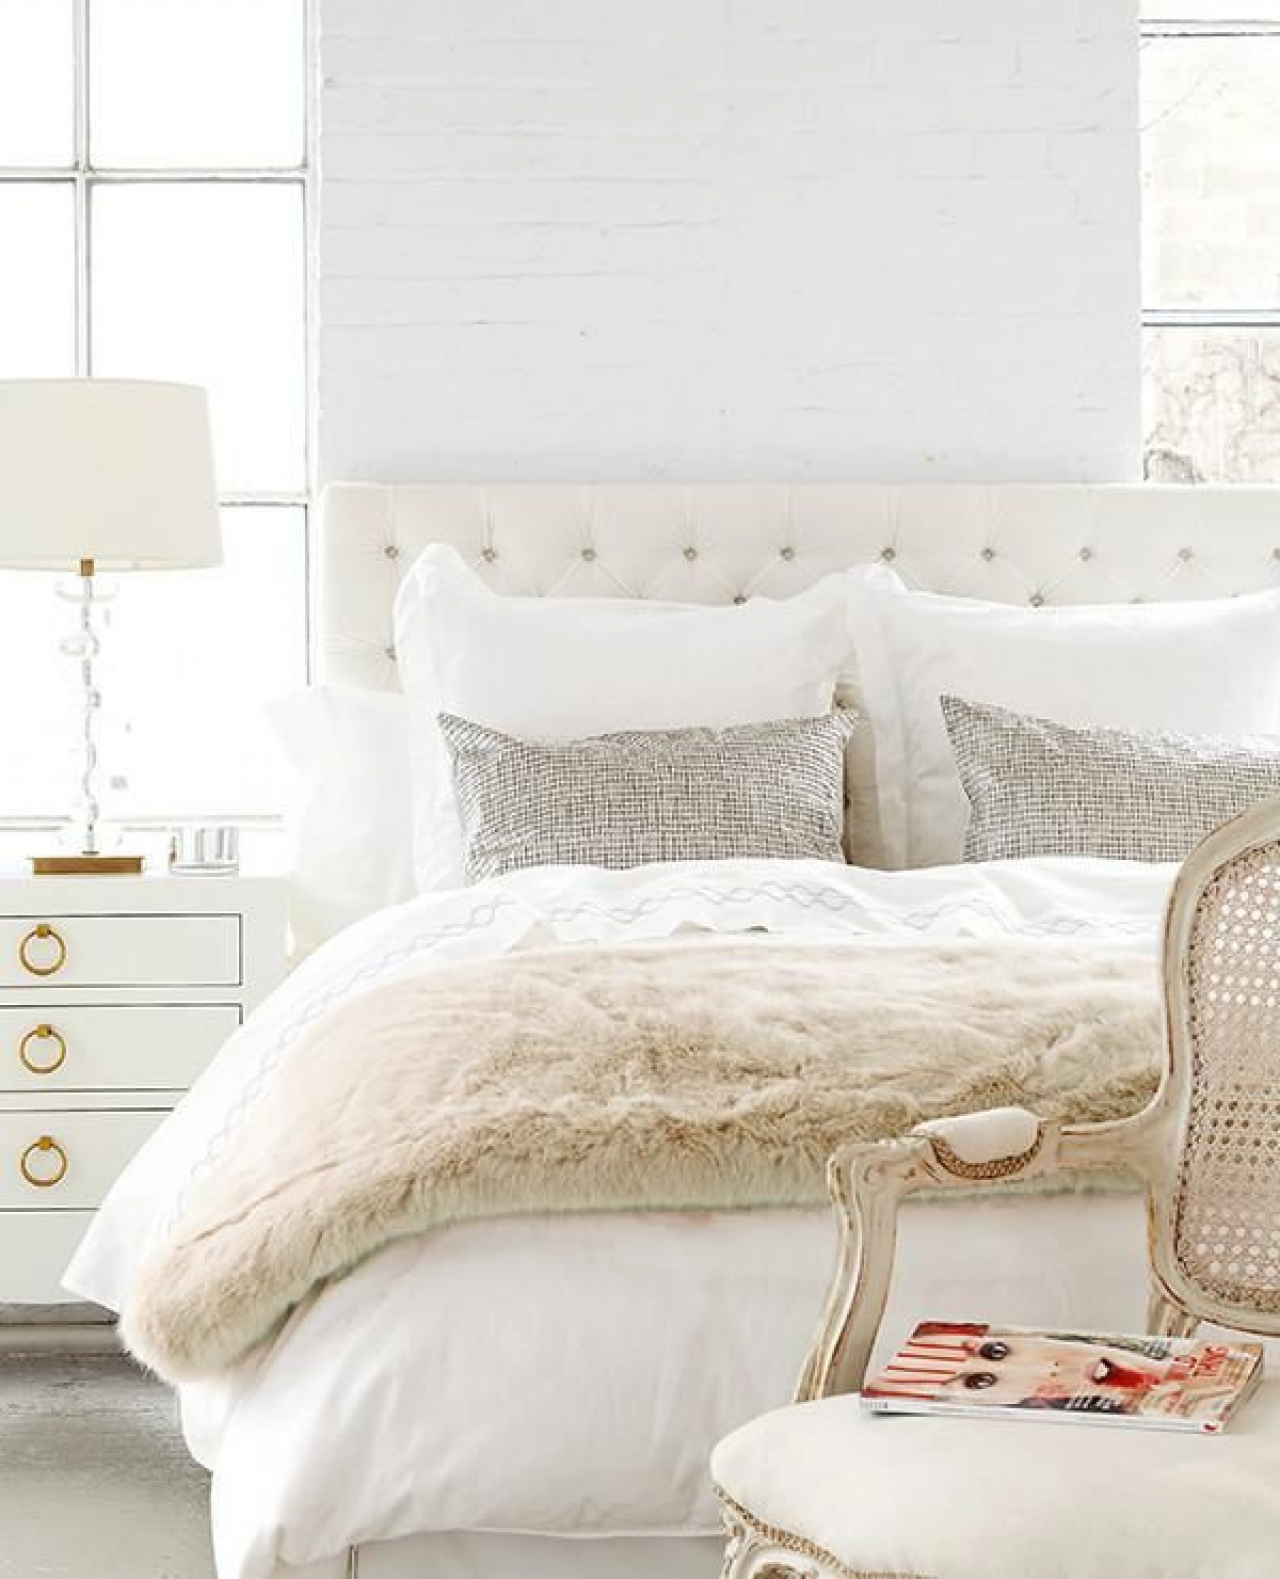 Real/Deal/Steal: A Bedroom in Shades of White